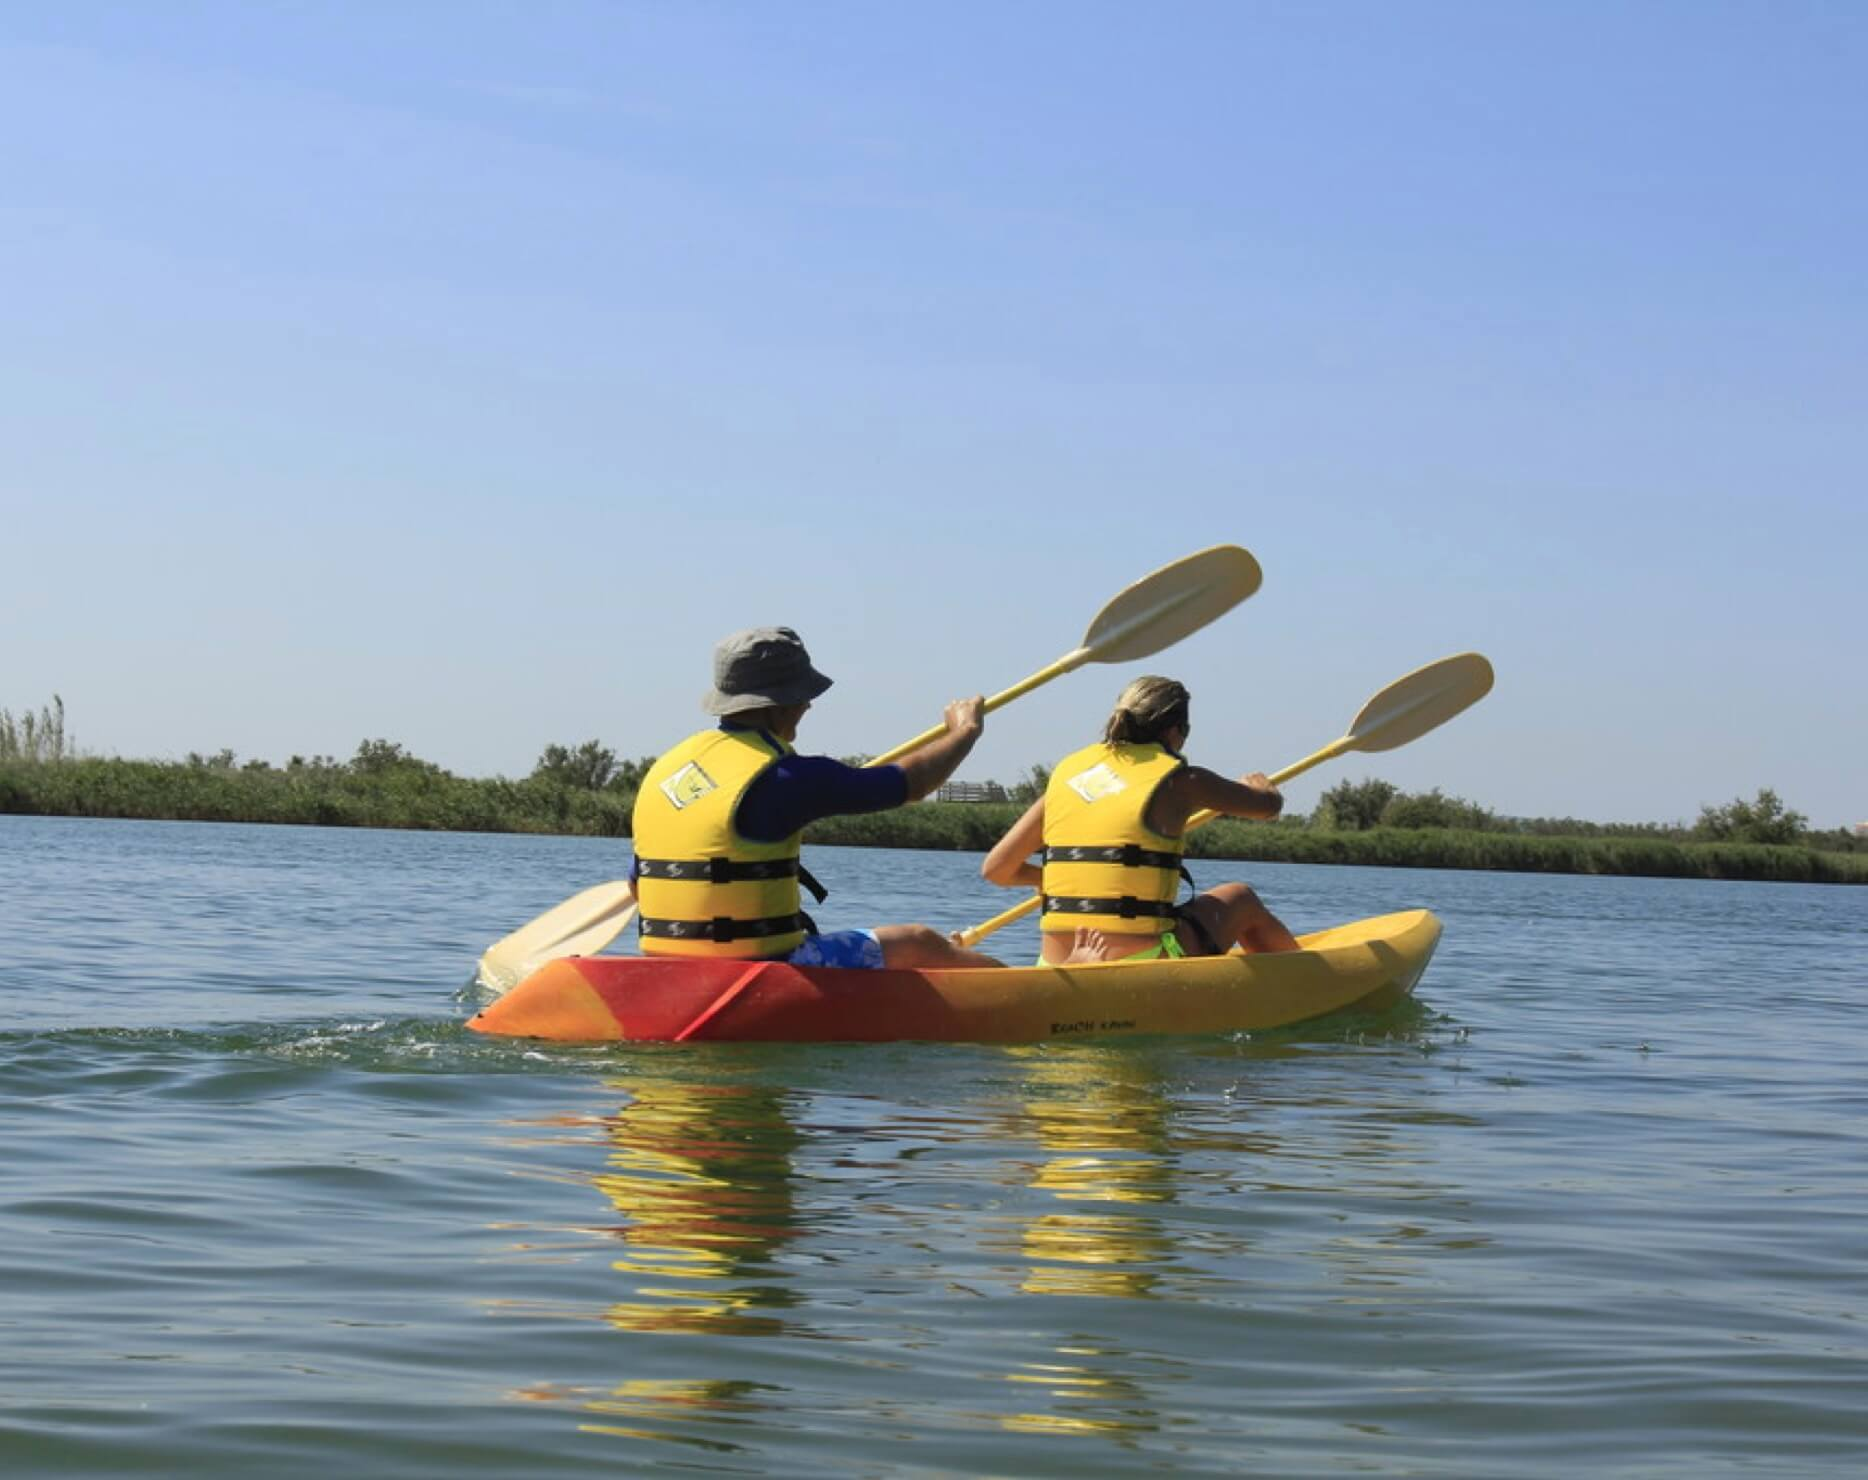 Kayak Kayak Rentals At Horn Pond City Of Woburn